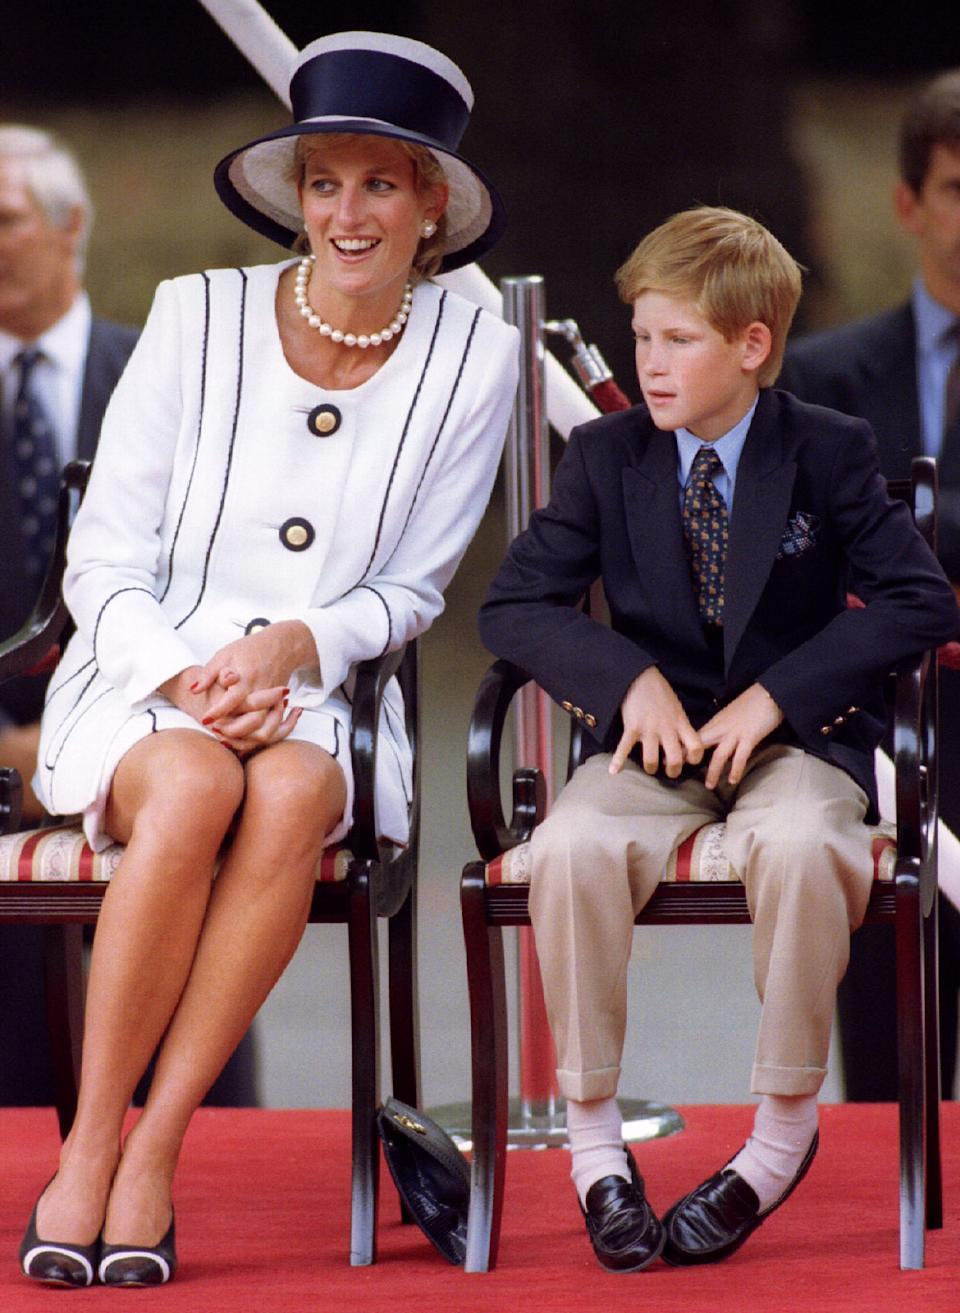 Diana, Princess of Wales and her son Prince Harry, depicted in 1995, had a close relationship. (Photo: Getty Images)